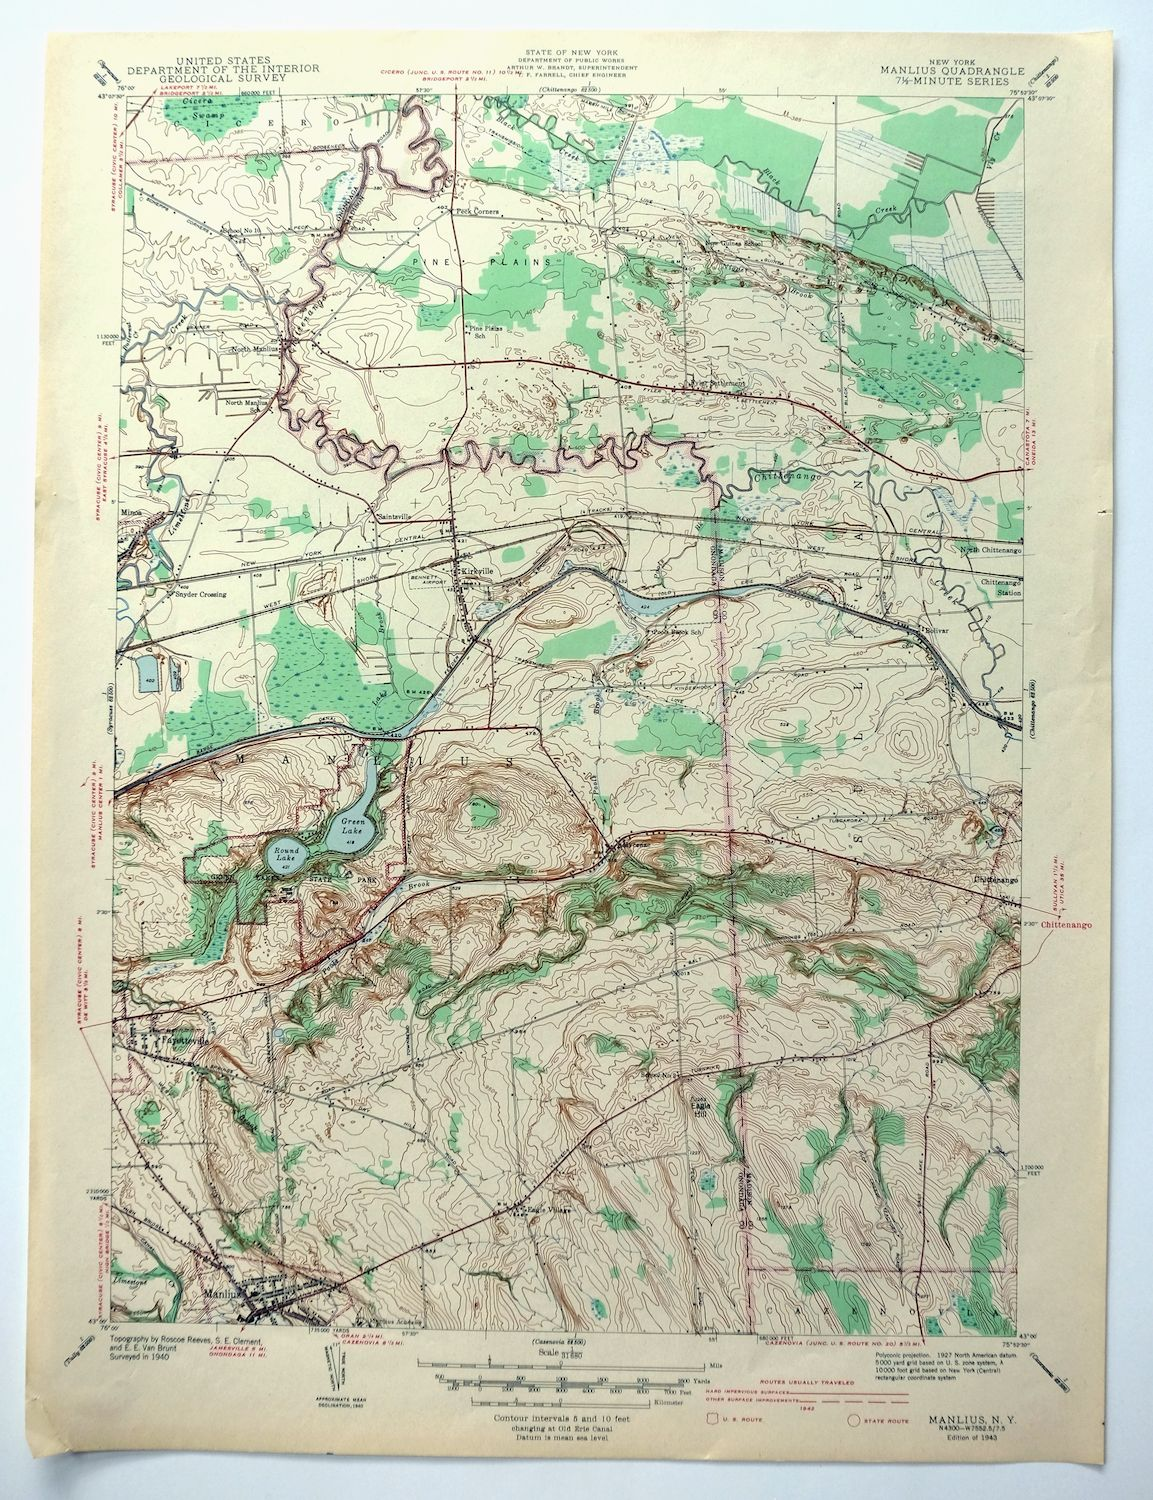 Details about Manlius New York Vintage 1943 USGS Topo Map Chittenango on